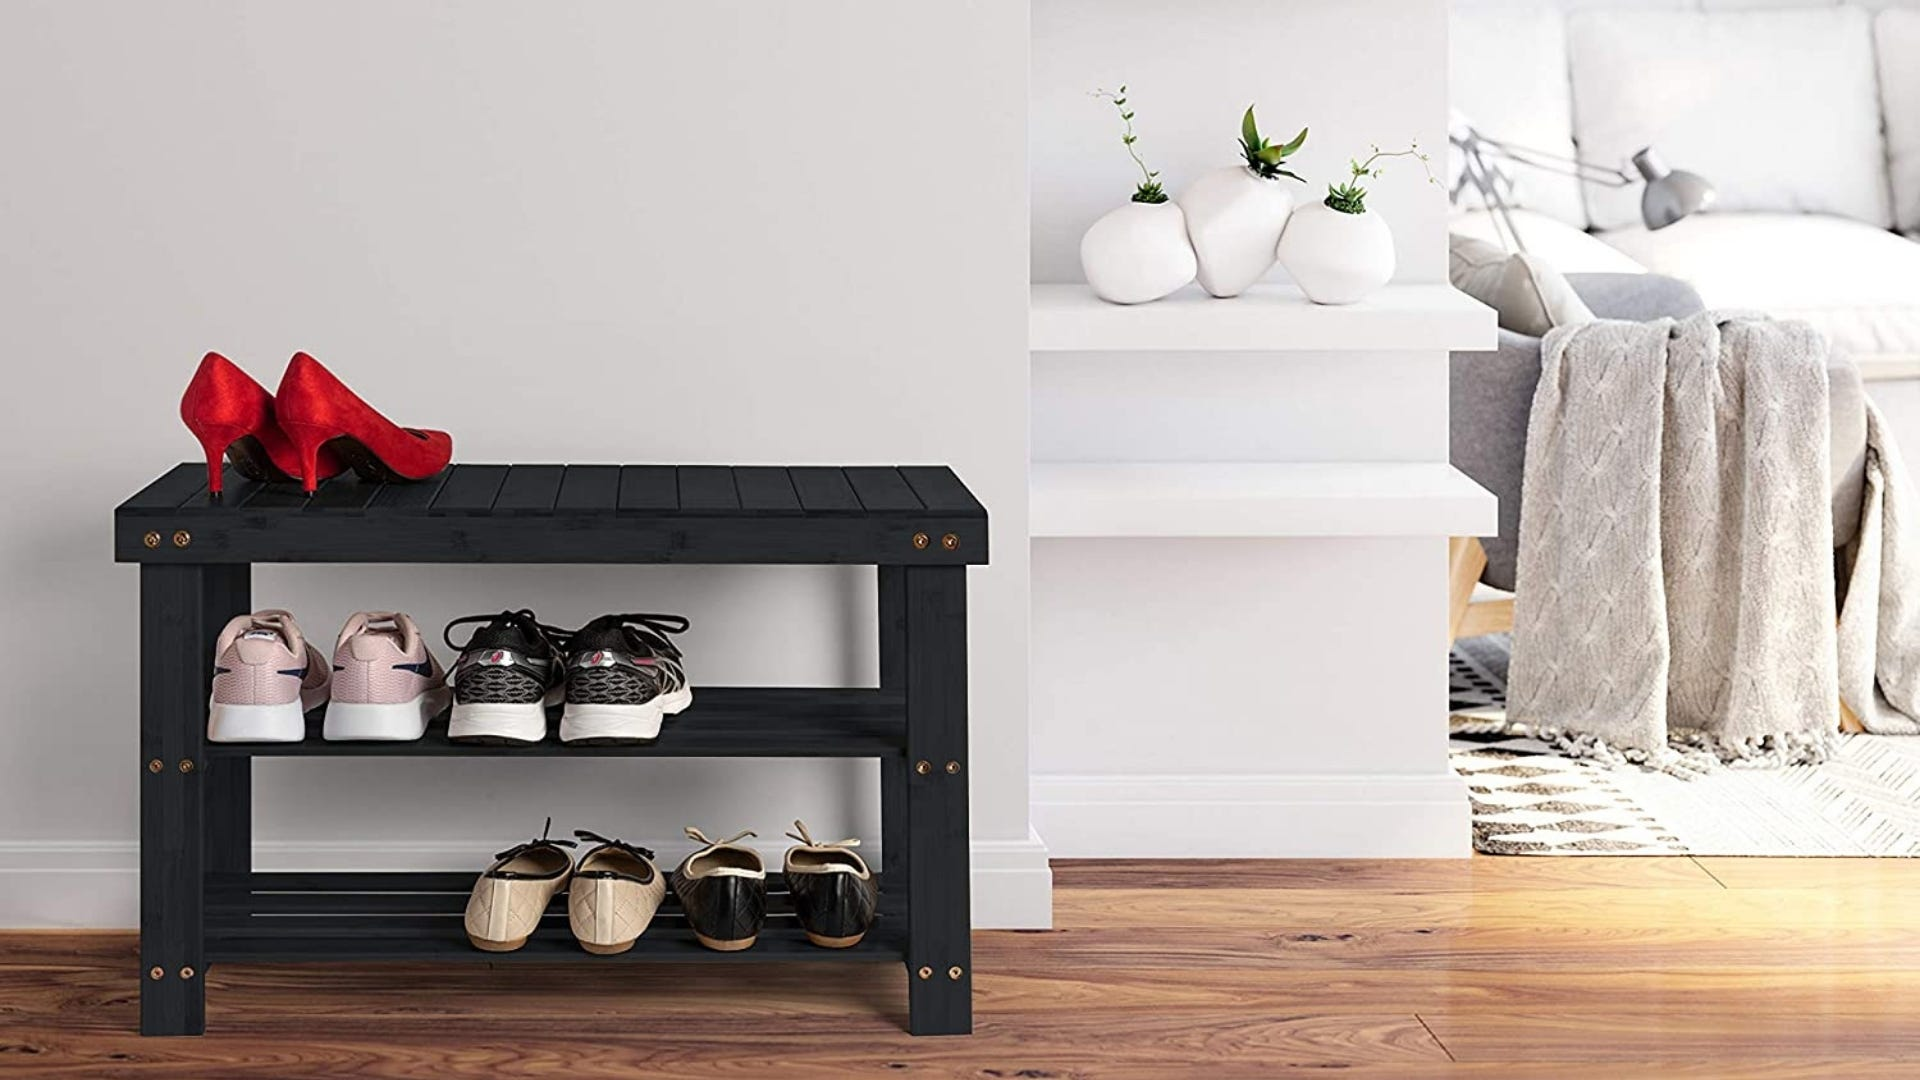 Black shoe rack with three levels holding five pairs of shoes.